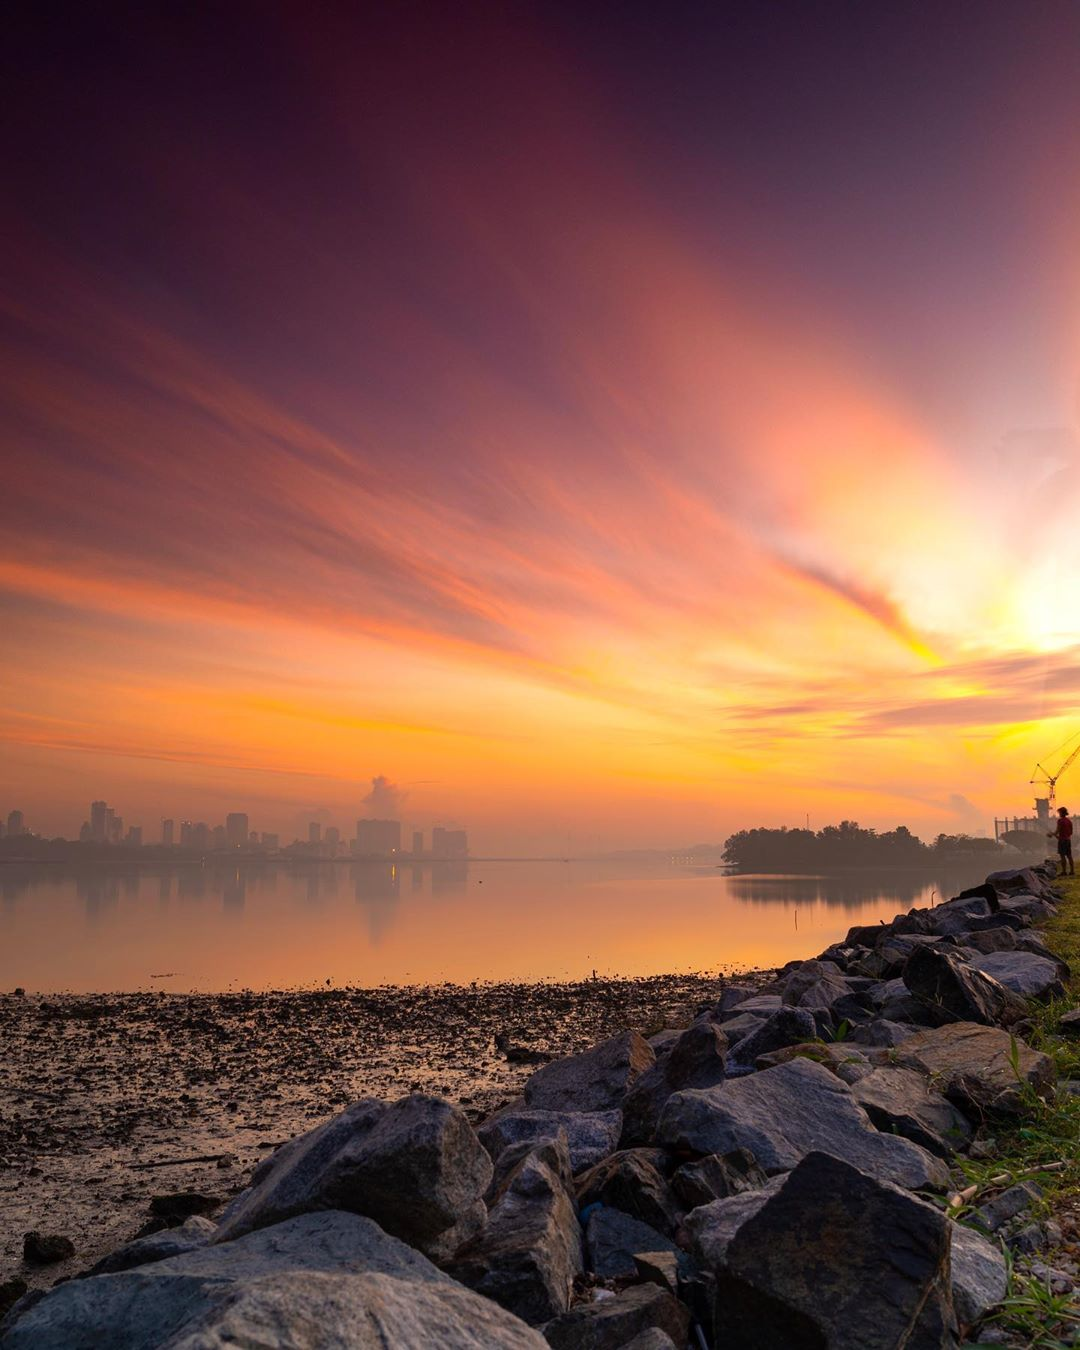 sunrise and sunset in singapore - kranji reservoir park